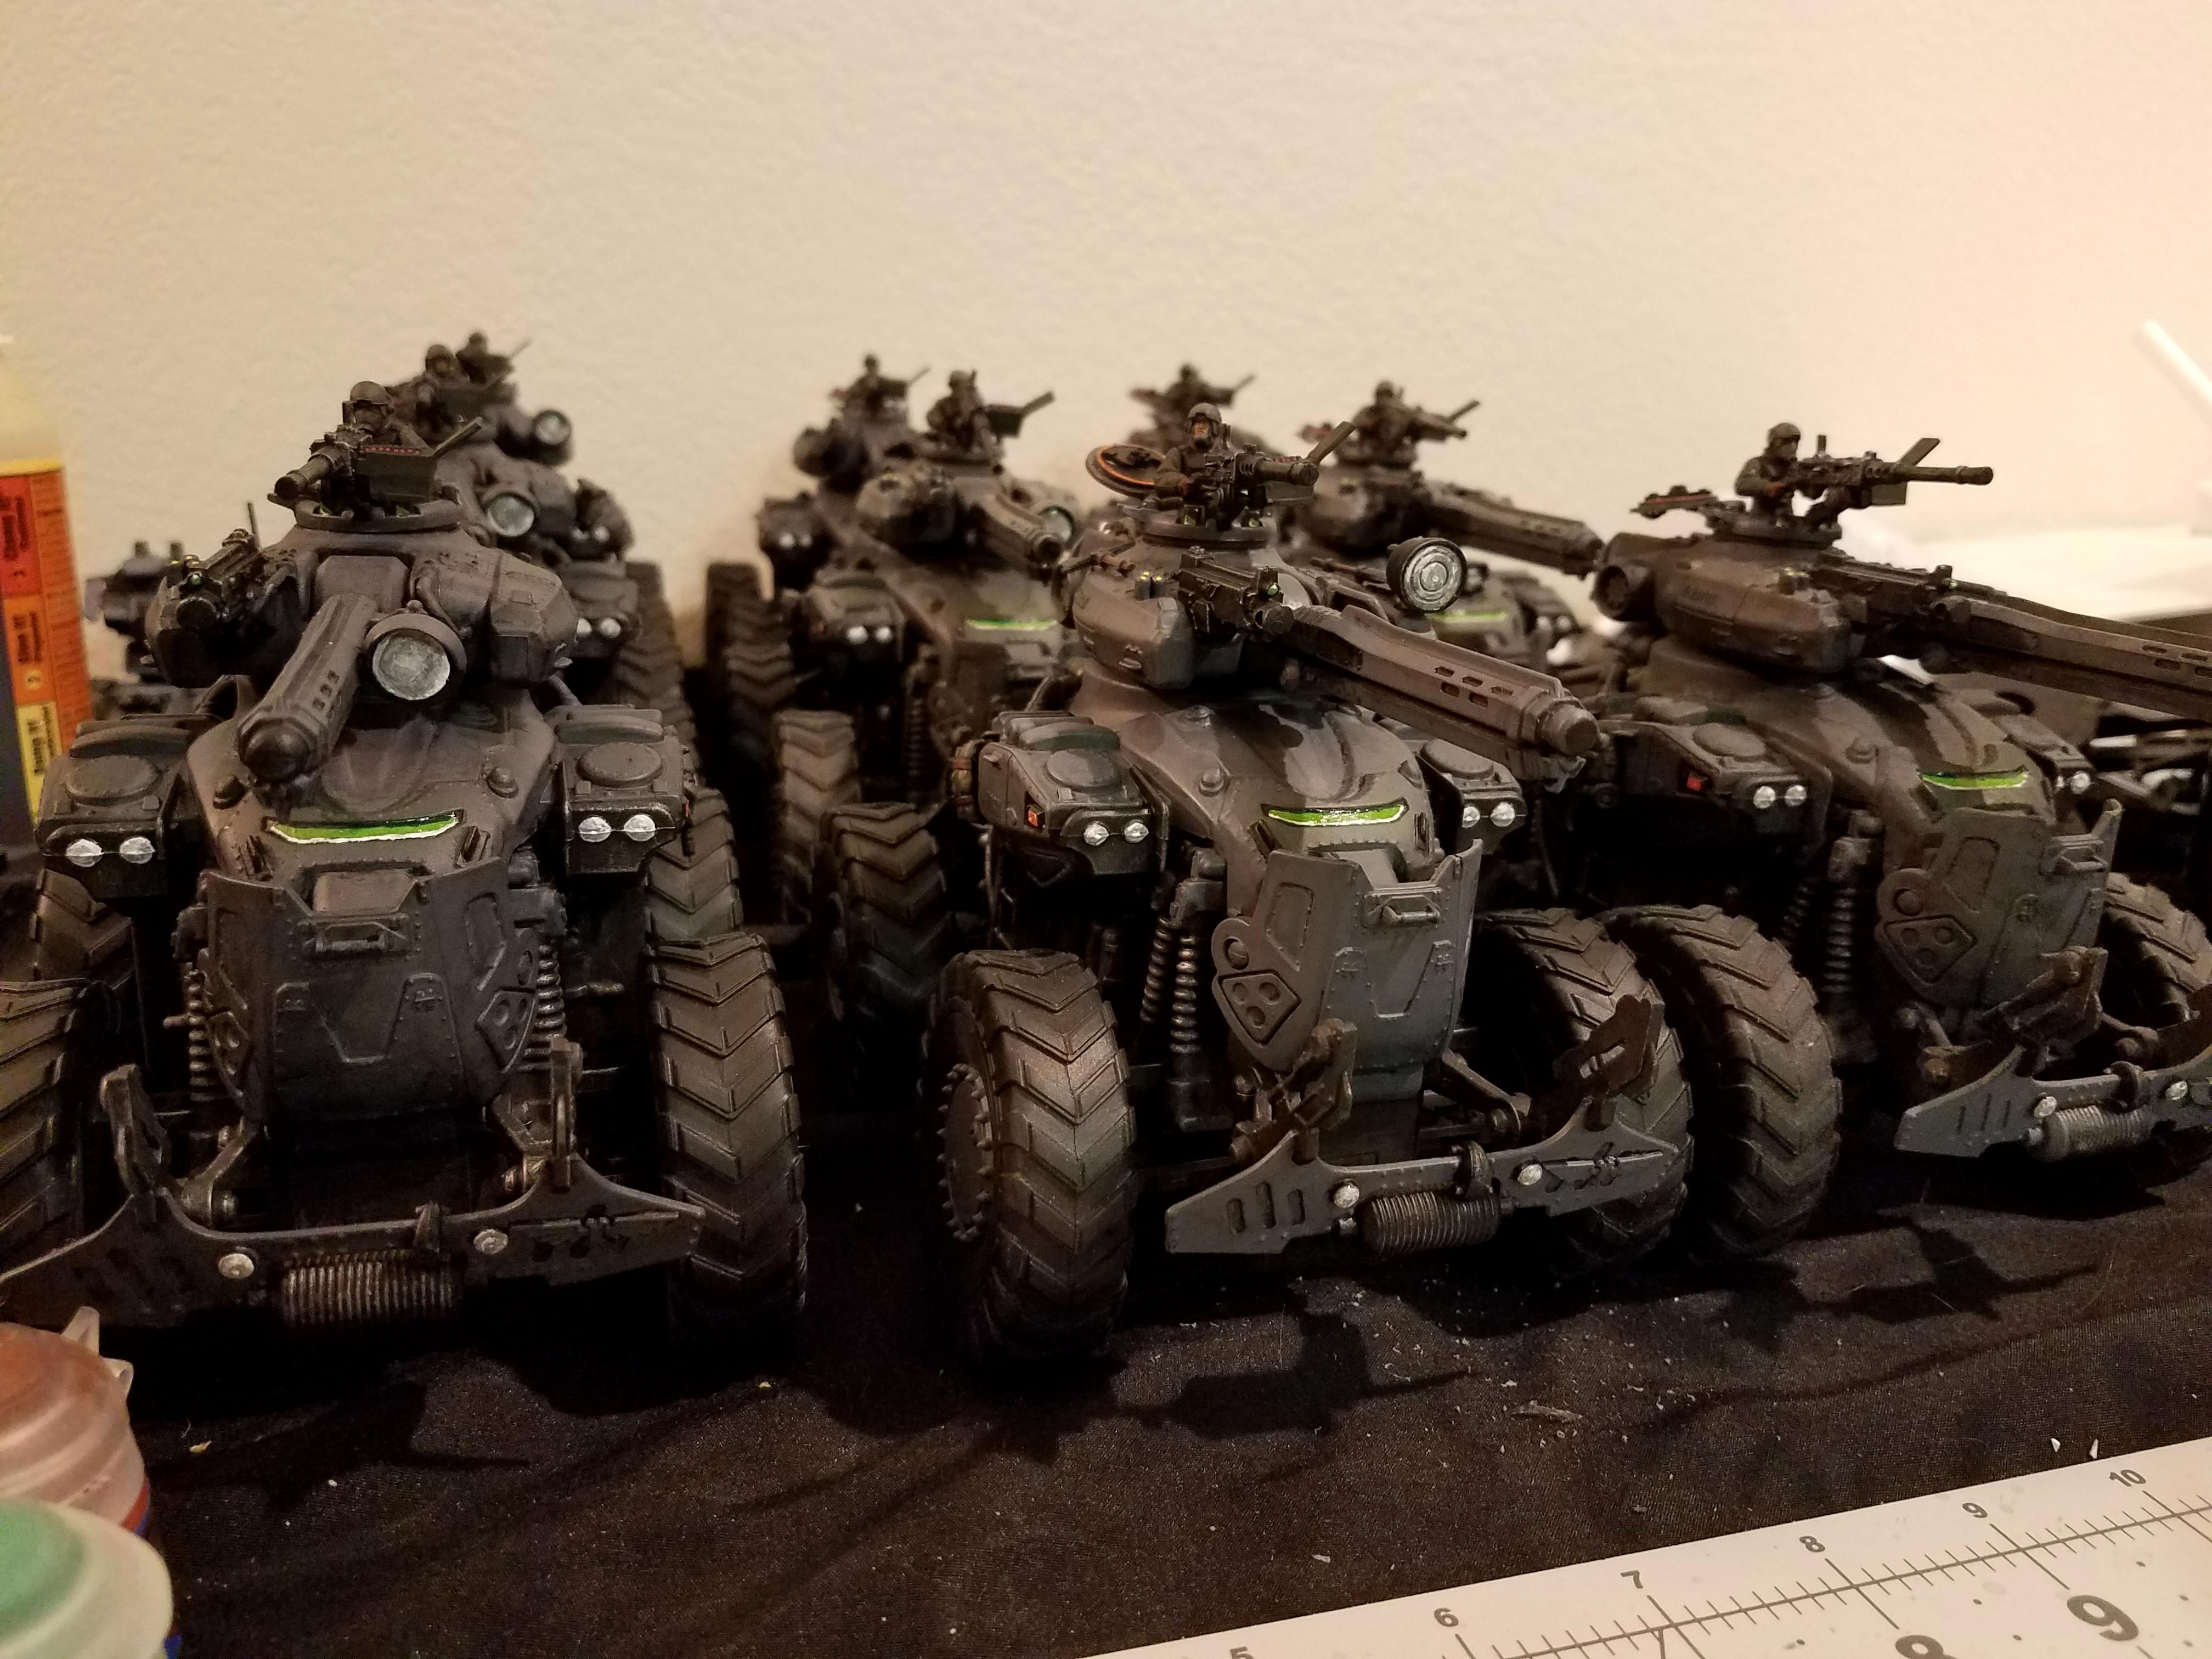 Gears Of War, Leman Russ, Mechanized, Proxy, Russ, Russes, Tank, Video Game